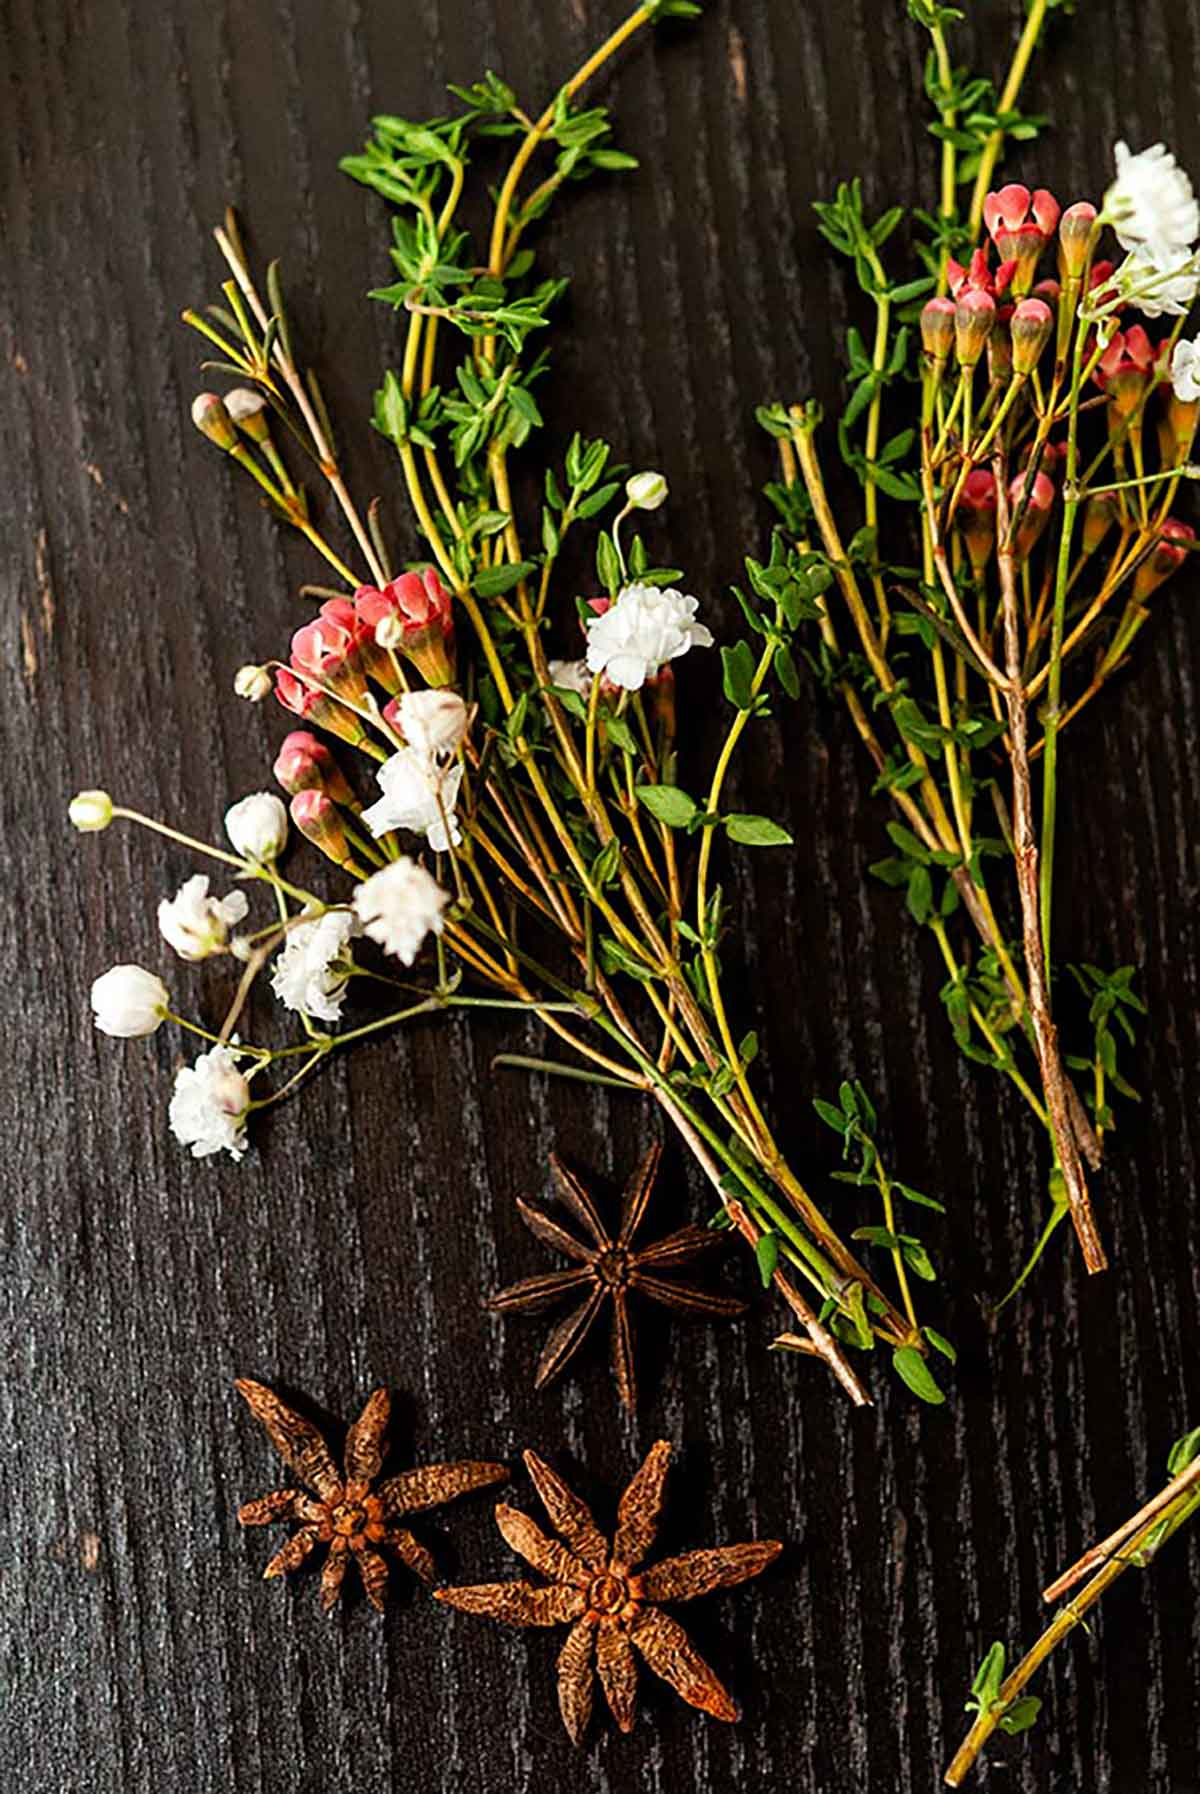 2 small bunches of herbs and flowers on a table with 3 star anise.